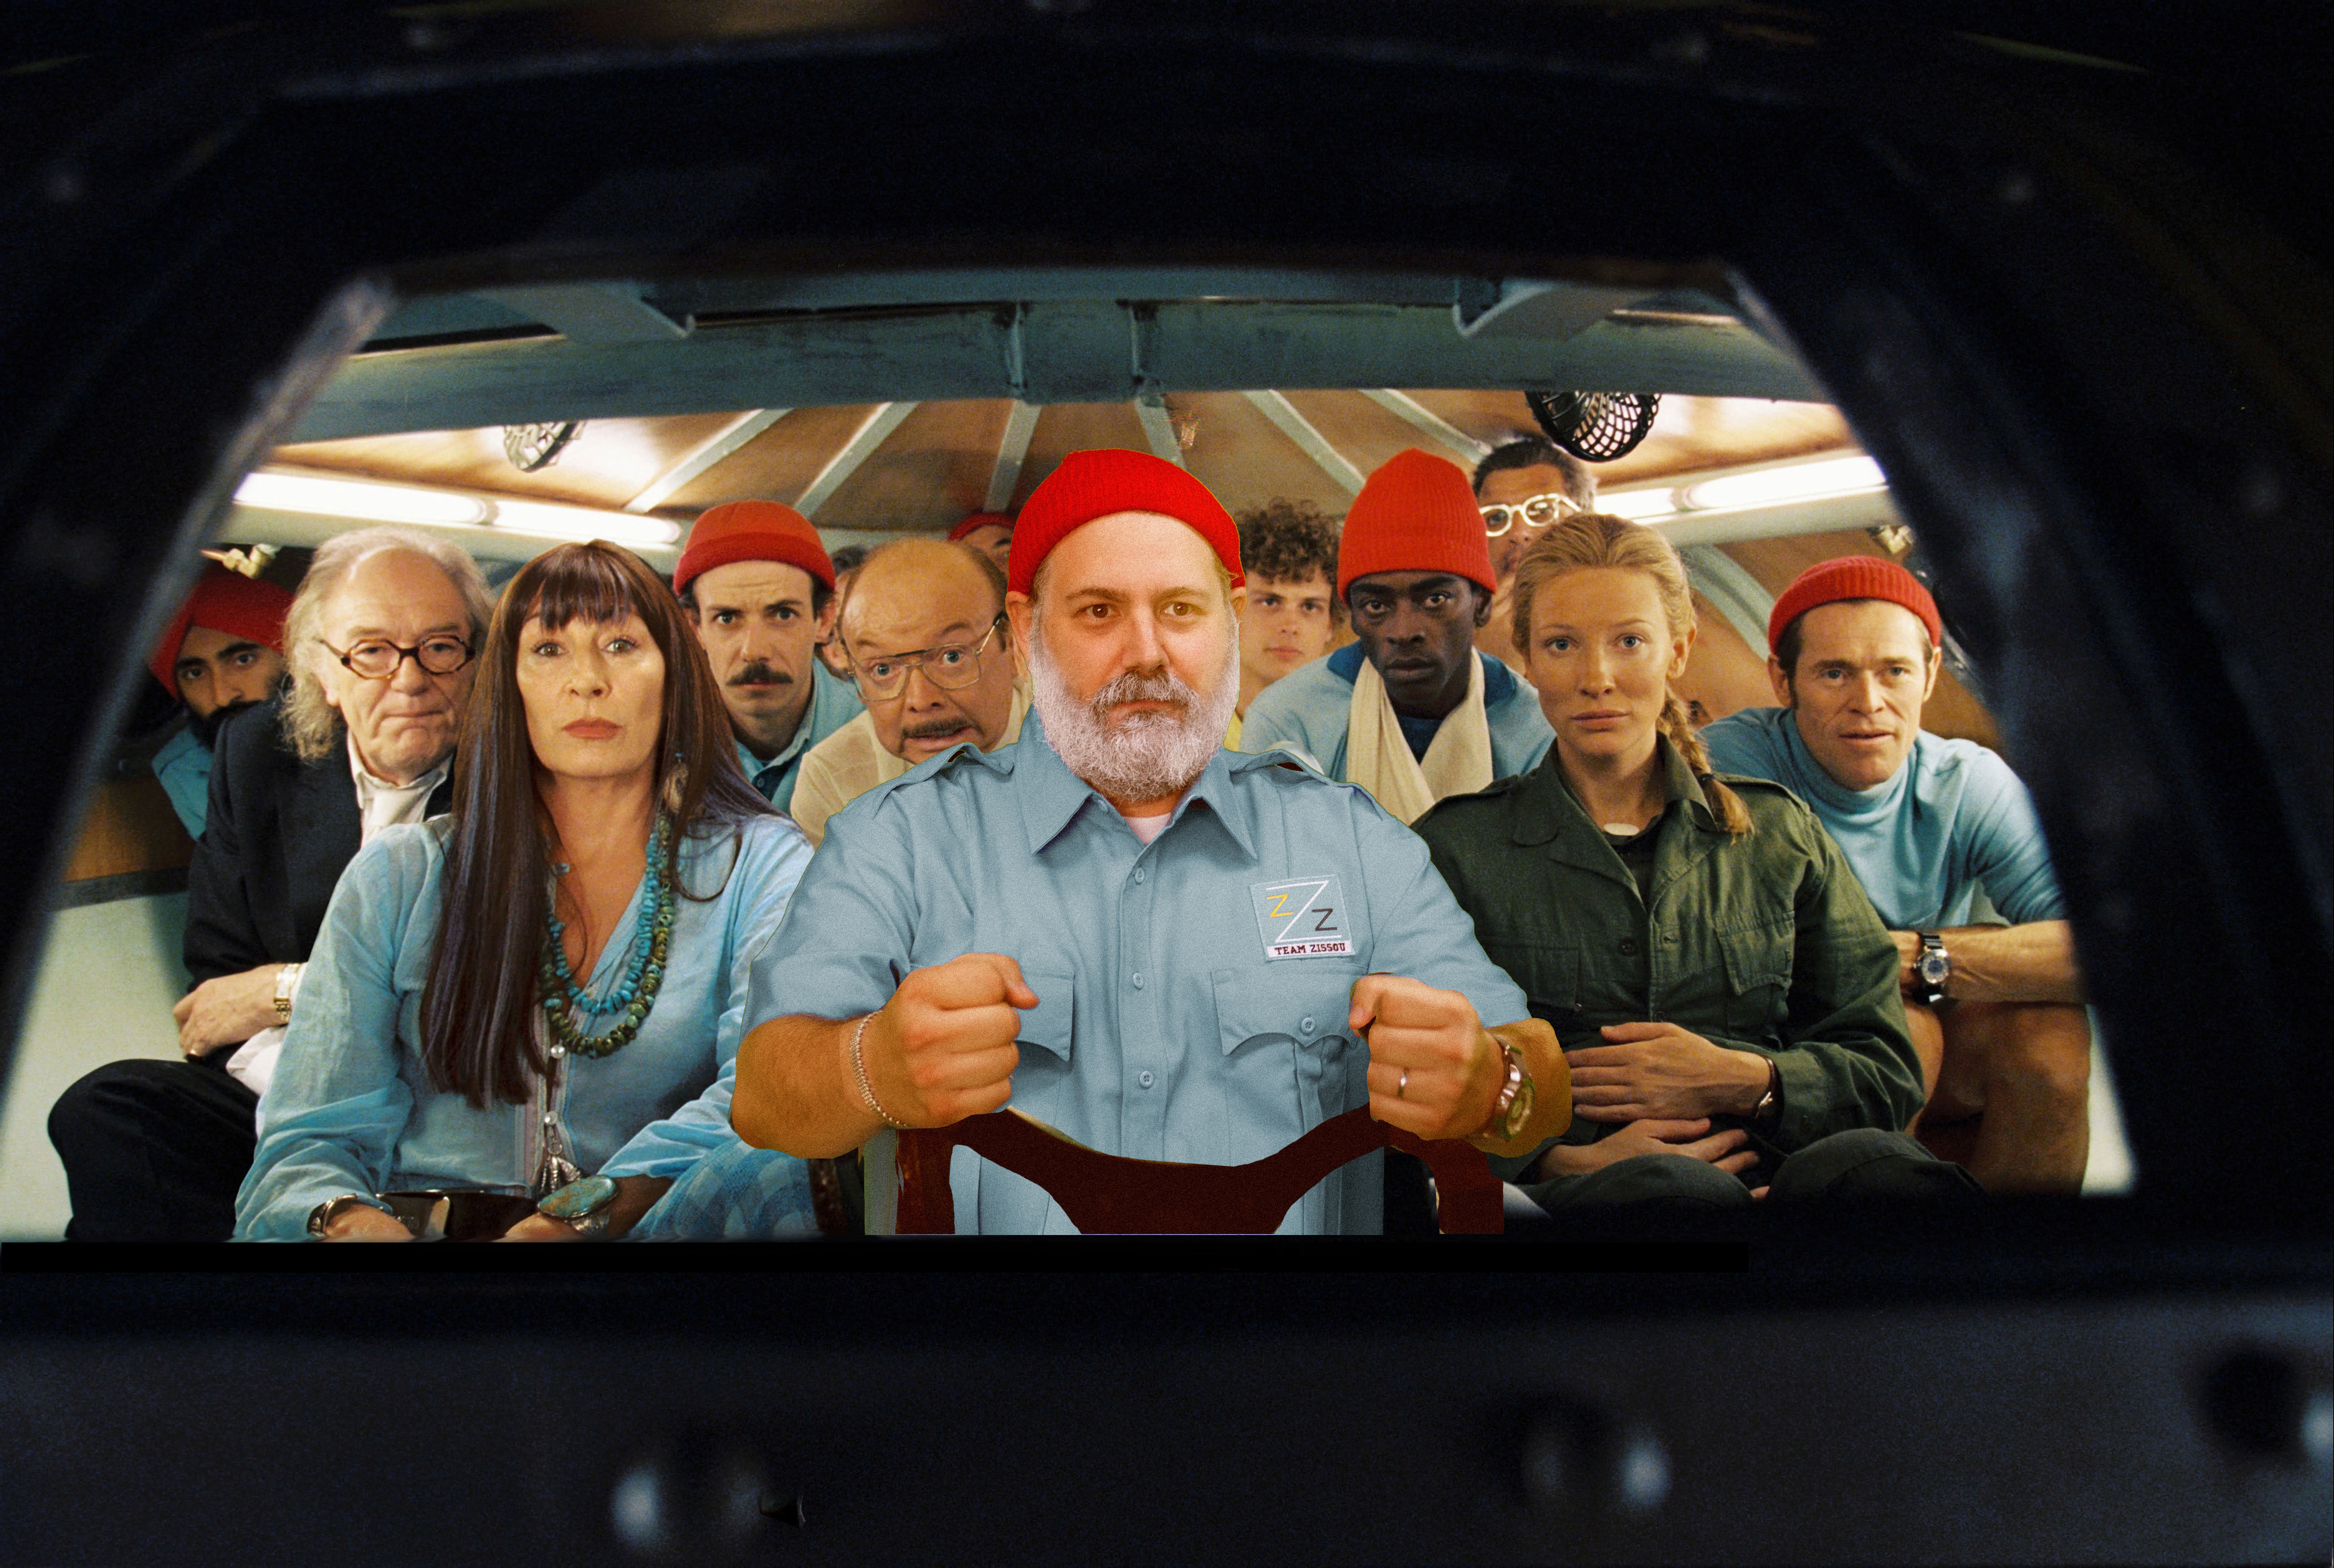 Pictured. front row left to right: Anjelica Huston, Bill Murray, Cate Blanchett, Willem Dafoe in a scene from LIFE AQUATIC, directed by Wes Anderson. Permission is hereby granted to magazines and newspapers to reproduce this picture on condition that it is accompanied by © Touchstone Pictures. Distributed by Buena Vista International.